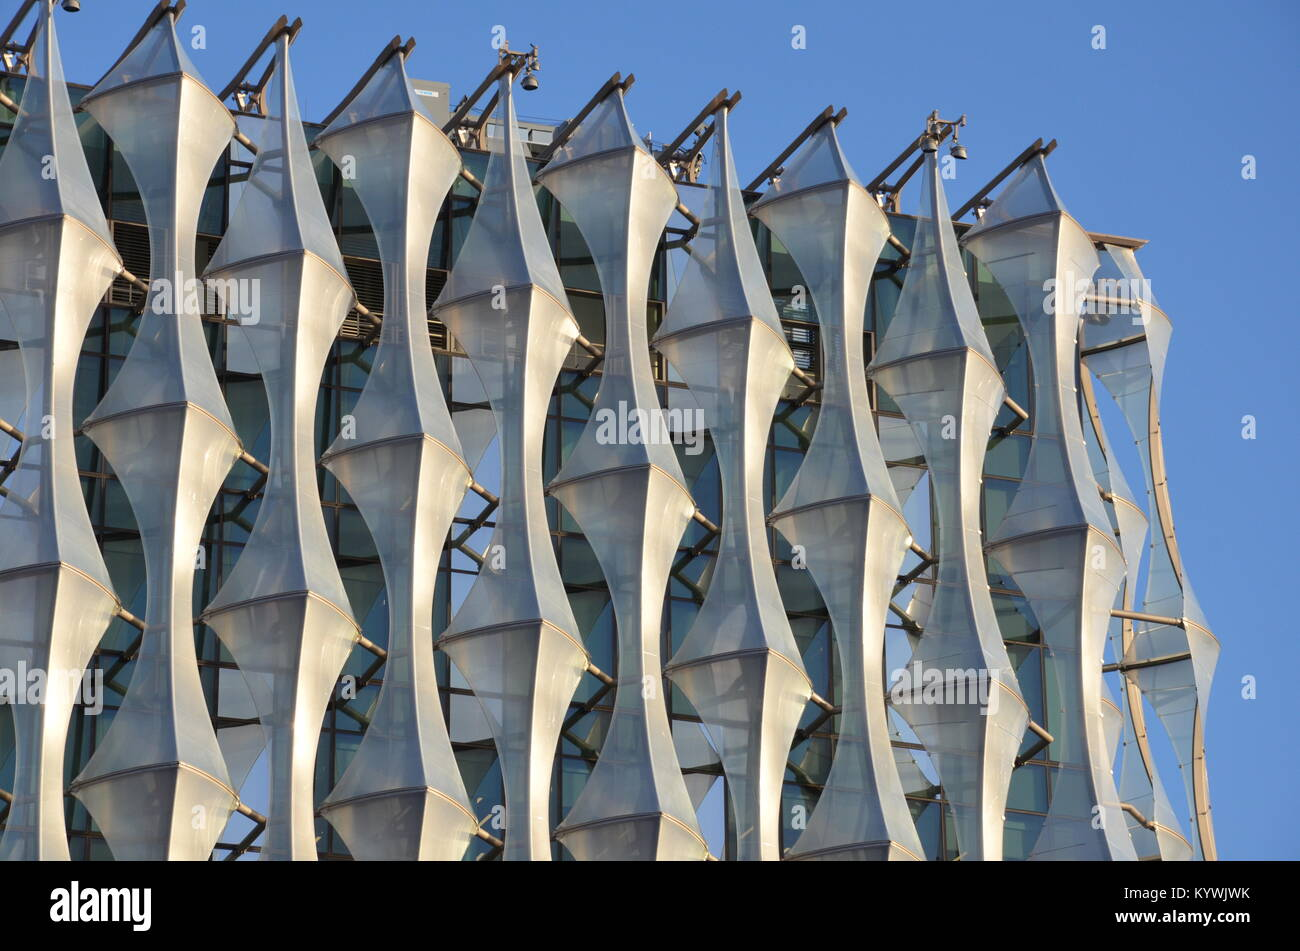 London, UK. 16th Jan, 2018. The new US Embassy in London opens to the public. 3pm, 16 January 2018. Nine Elms, Battersea, - Stock Image